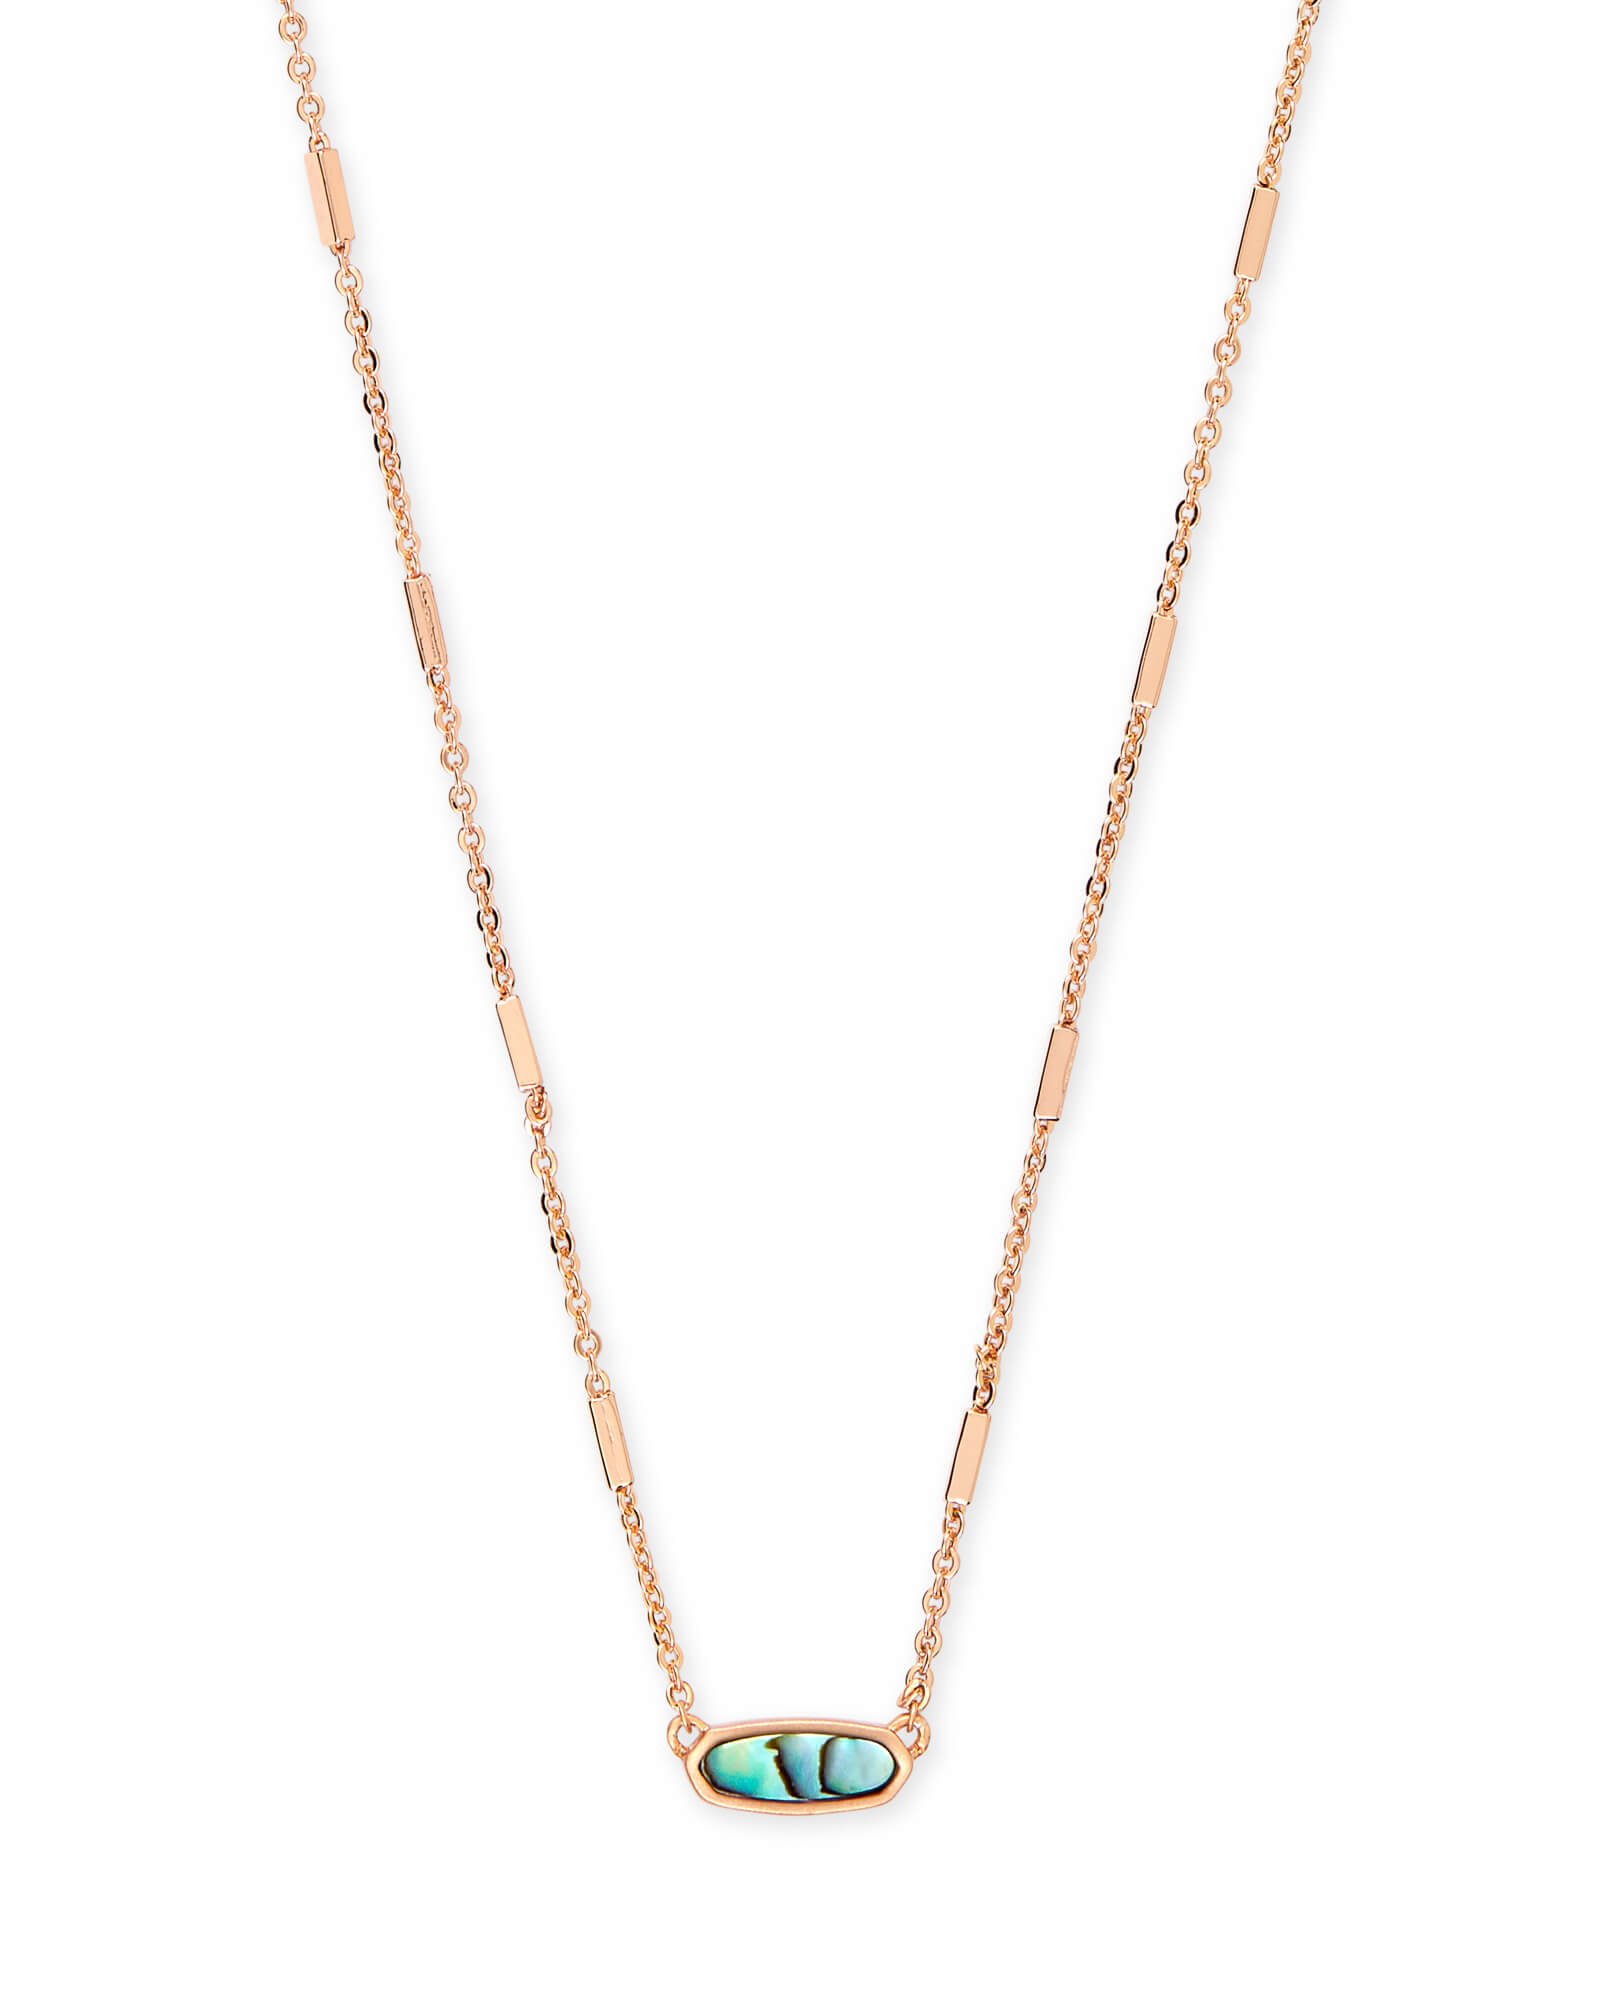 Miya Rose Gold Pendant Necklace in Abalone Shell